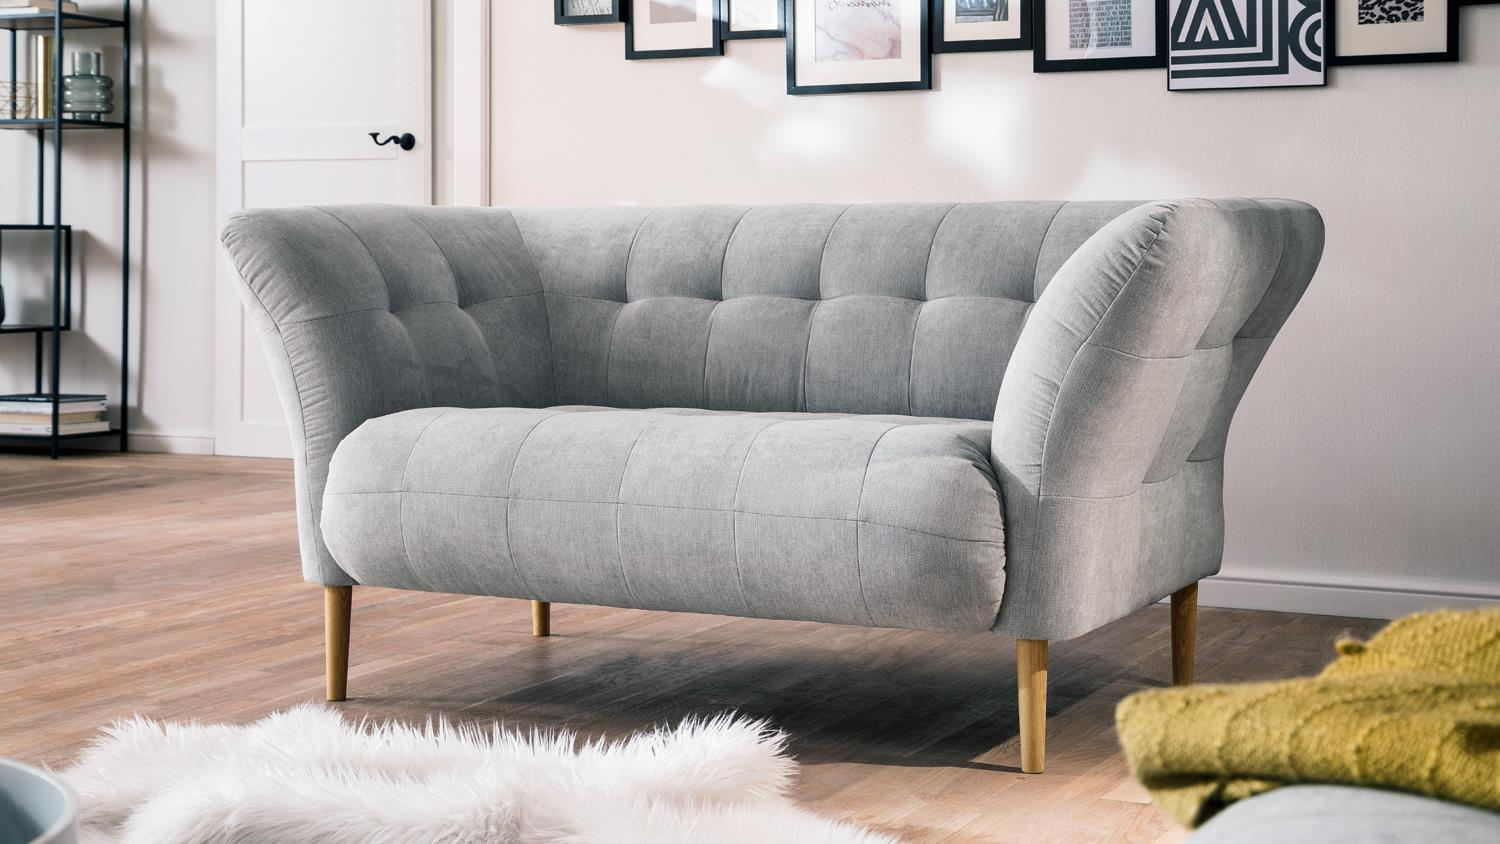 Lounge Sofa Grau Loveseat Big Apple Sofa Loungesofa Couch Stoff Silber Grau 160x97 Cm